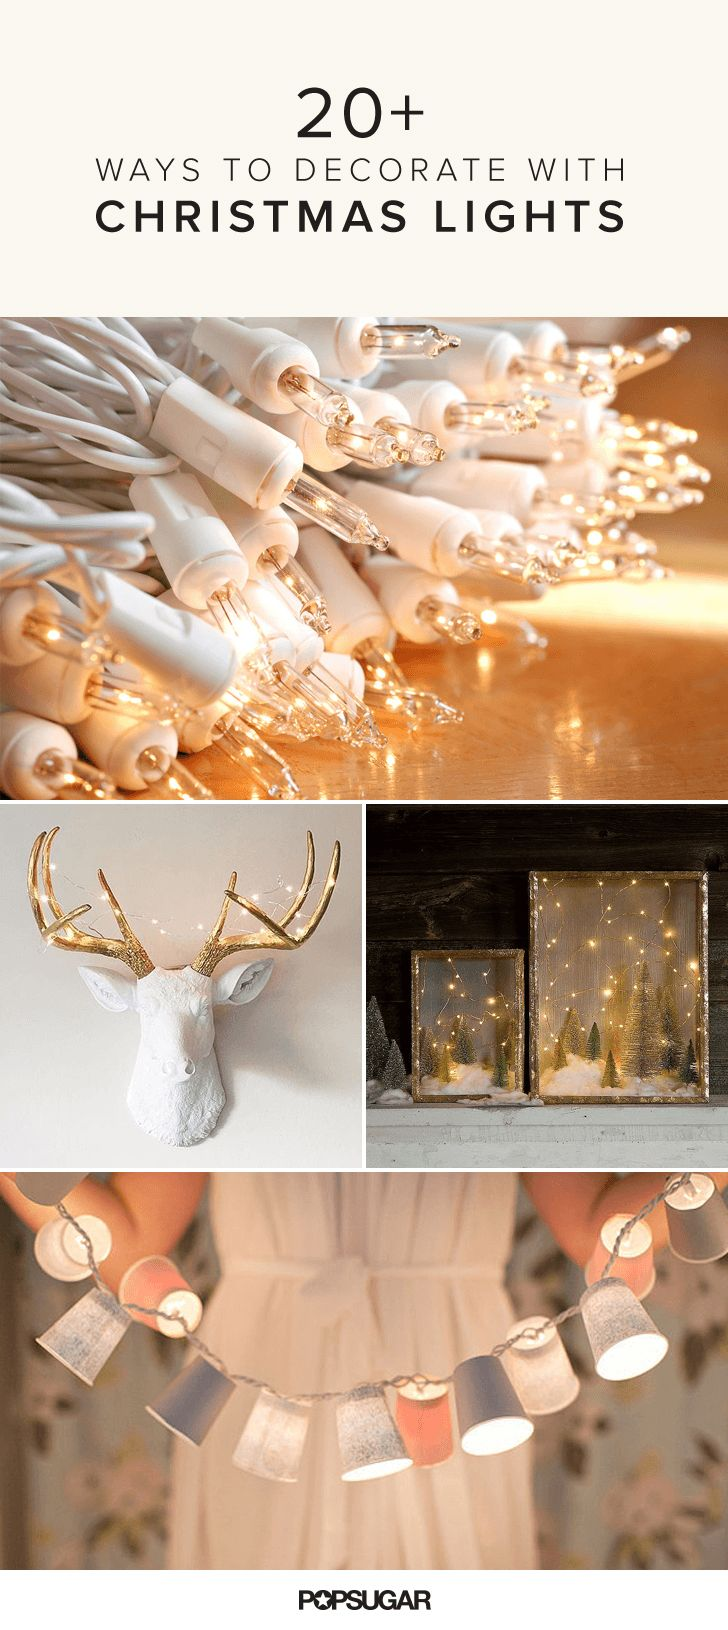 23 Unique Ways to Decorate With Christmas Lights